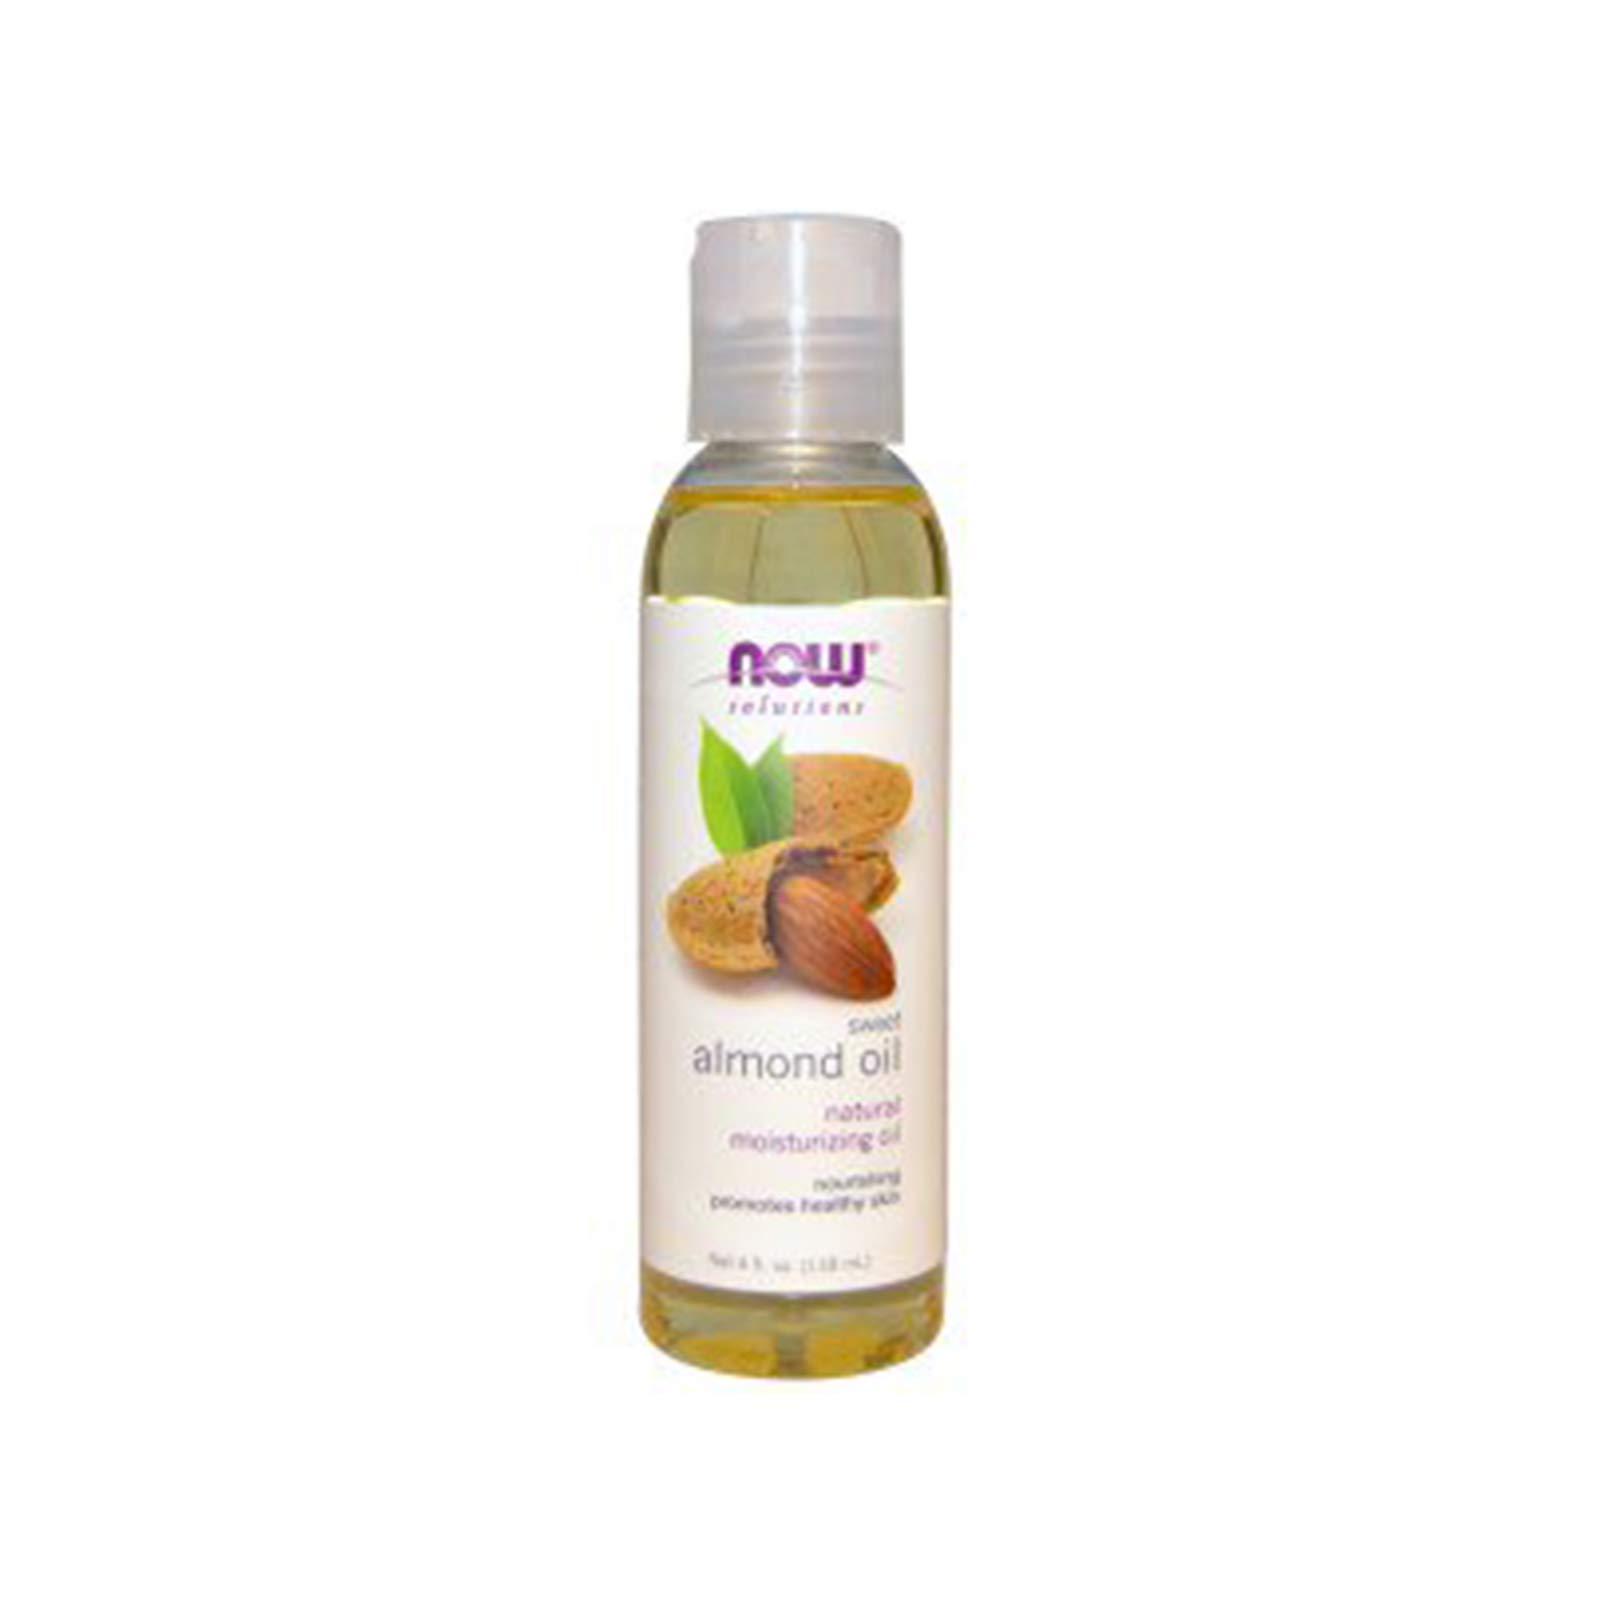 Now Solutions Sweet Almond Oil, 4-Ounce